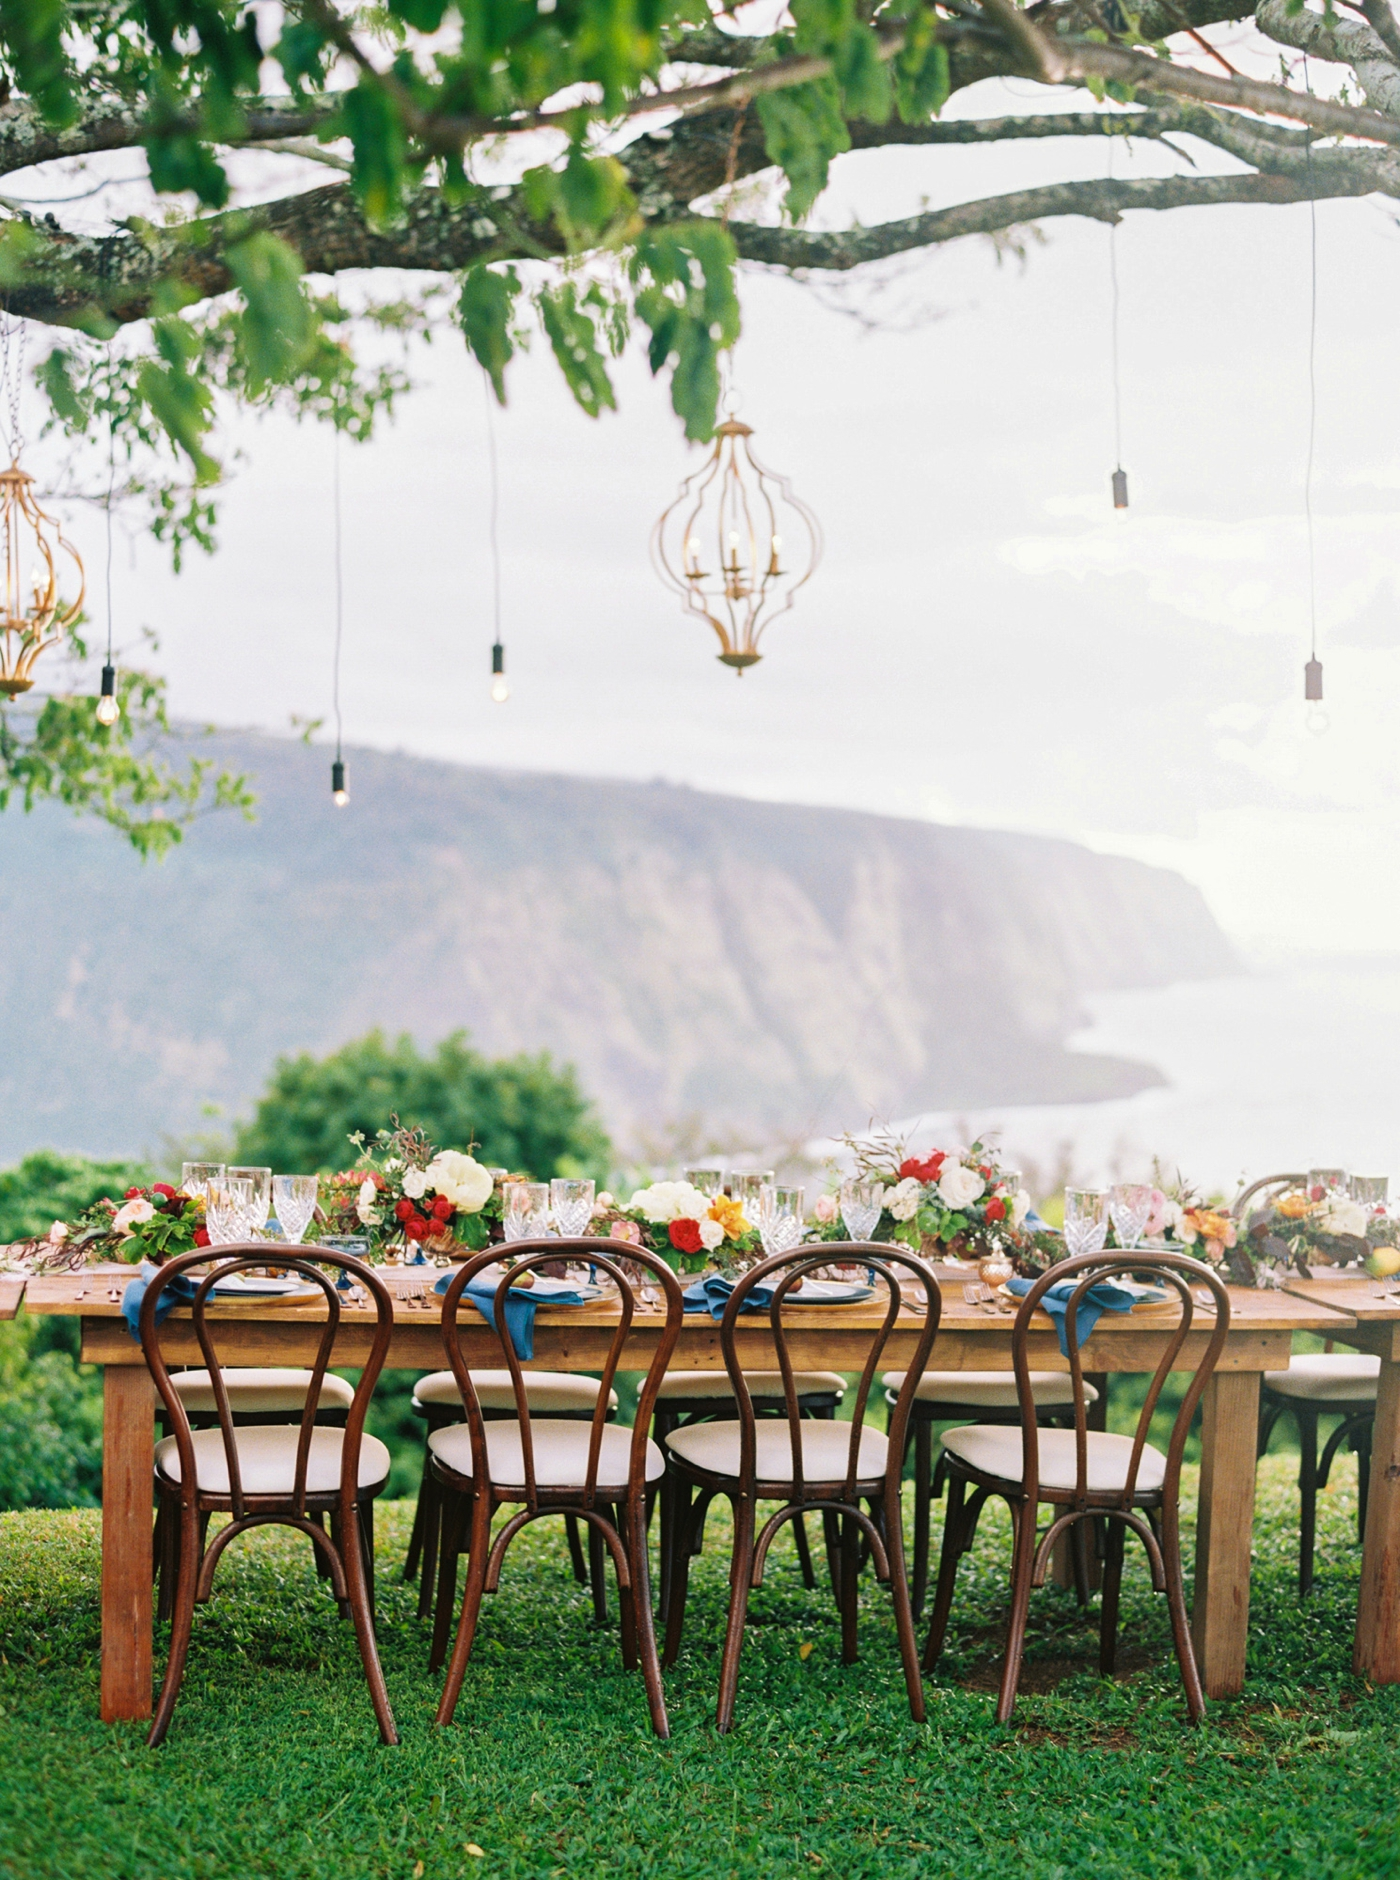 Martha-Stewart-Waipio-Valley-Big-Island-Hawaii-Wedding-Rebecca-Arthurs-0281.jpg